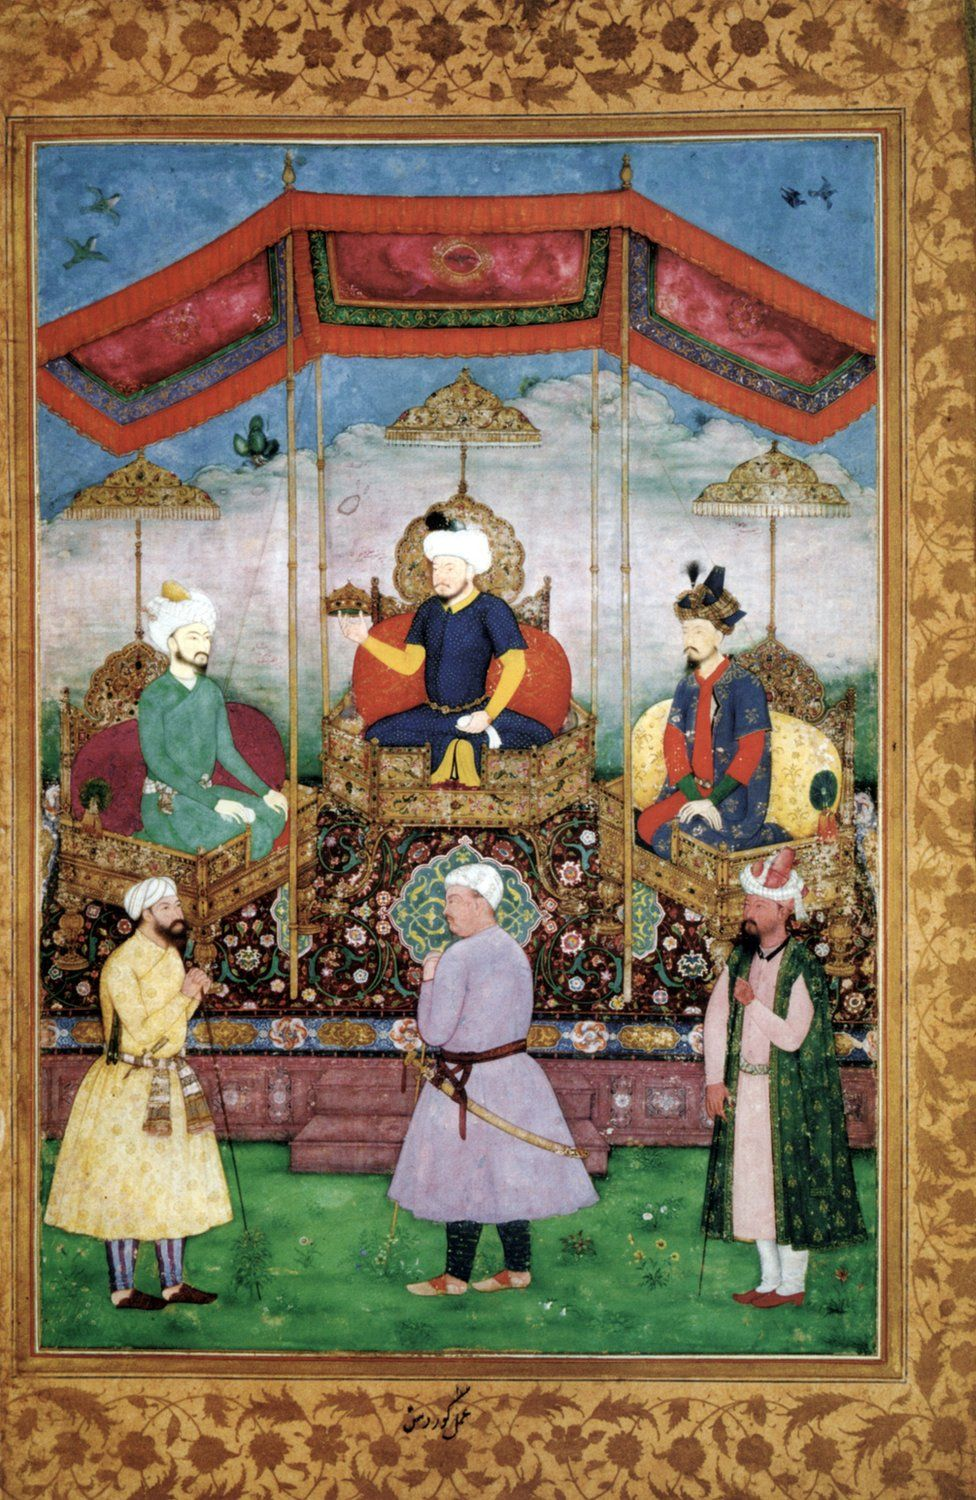 Timur handing the imperial crown to Babur in the presence of Humayun.